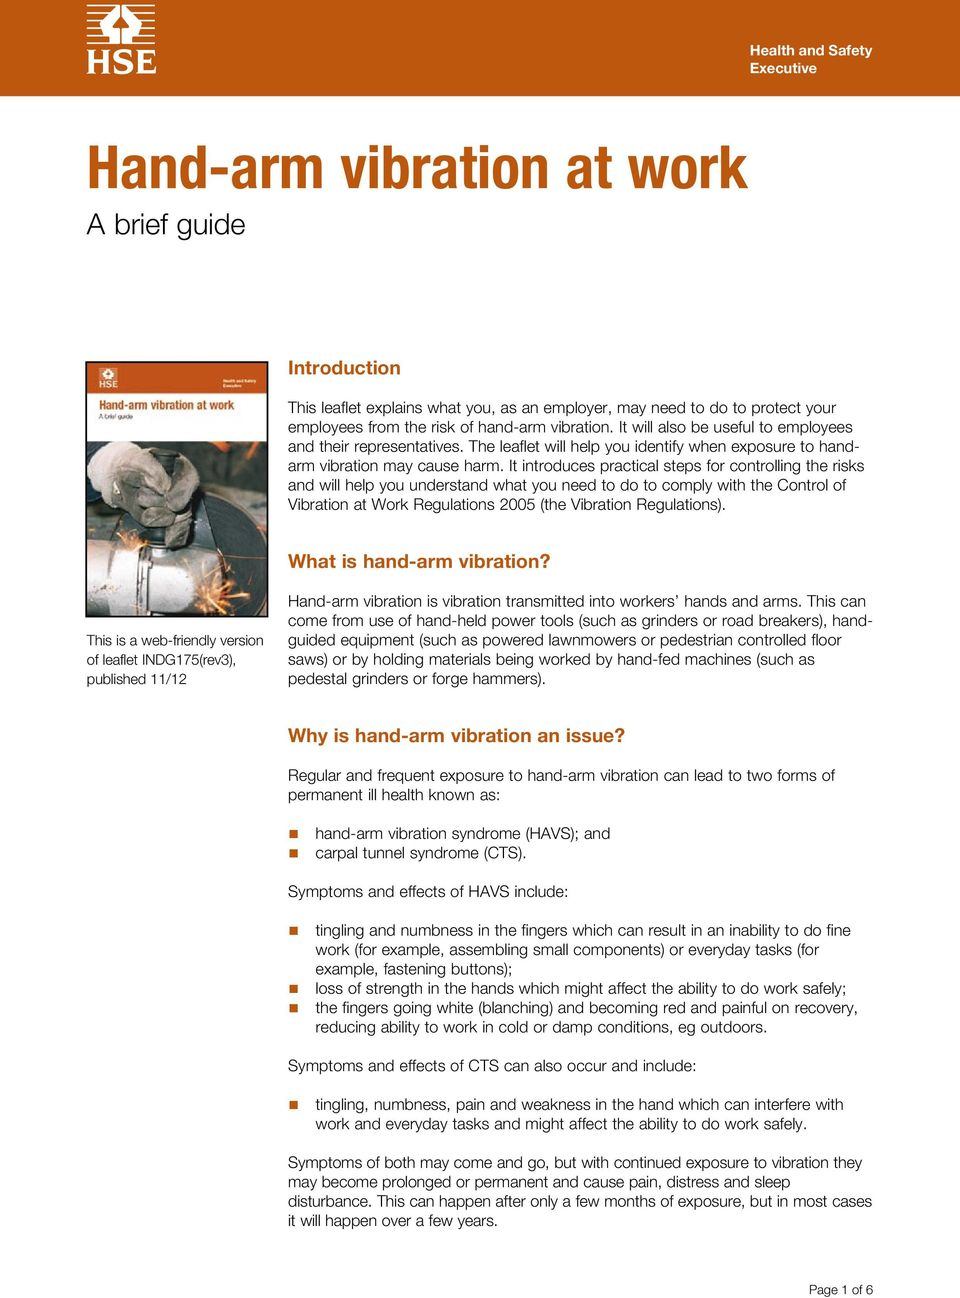 It introduces practical steps for controlling the risks and will help you understand what you need to do to comply with the Control of Vibration at Work Regulations 2005 (the Vibration Regulations).